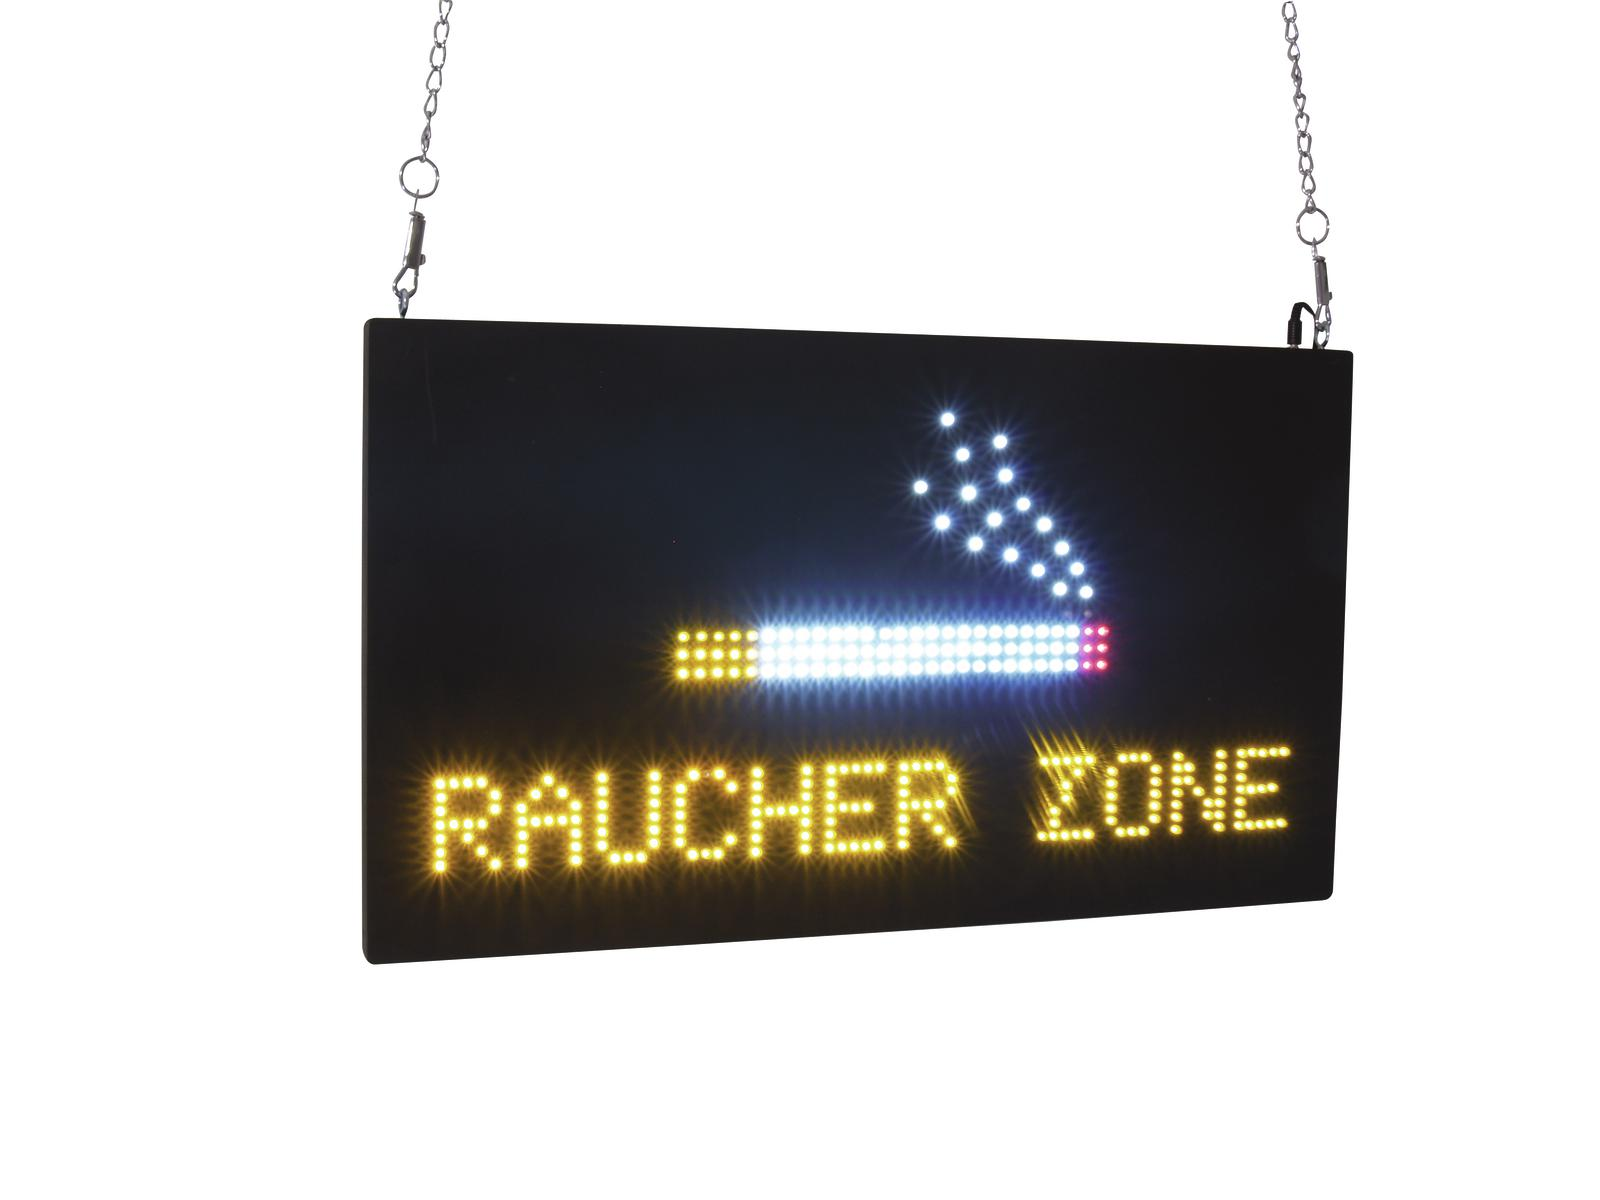 Sophisticated Raucherzone Gallery Of Eurolite Led Sign